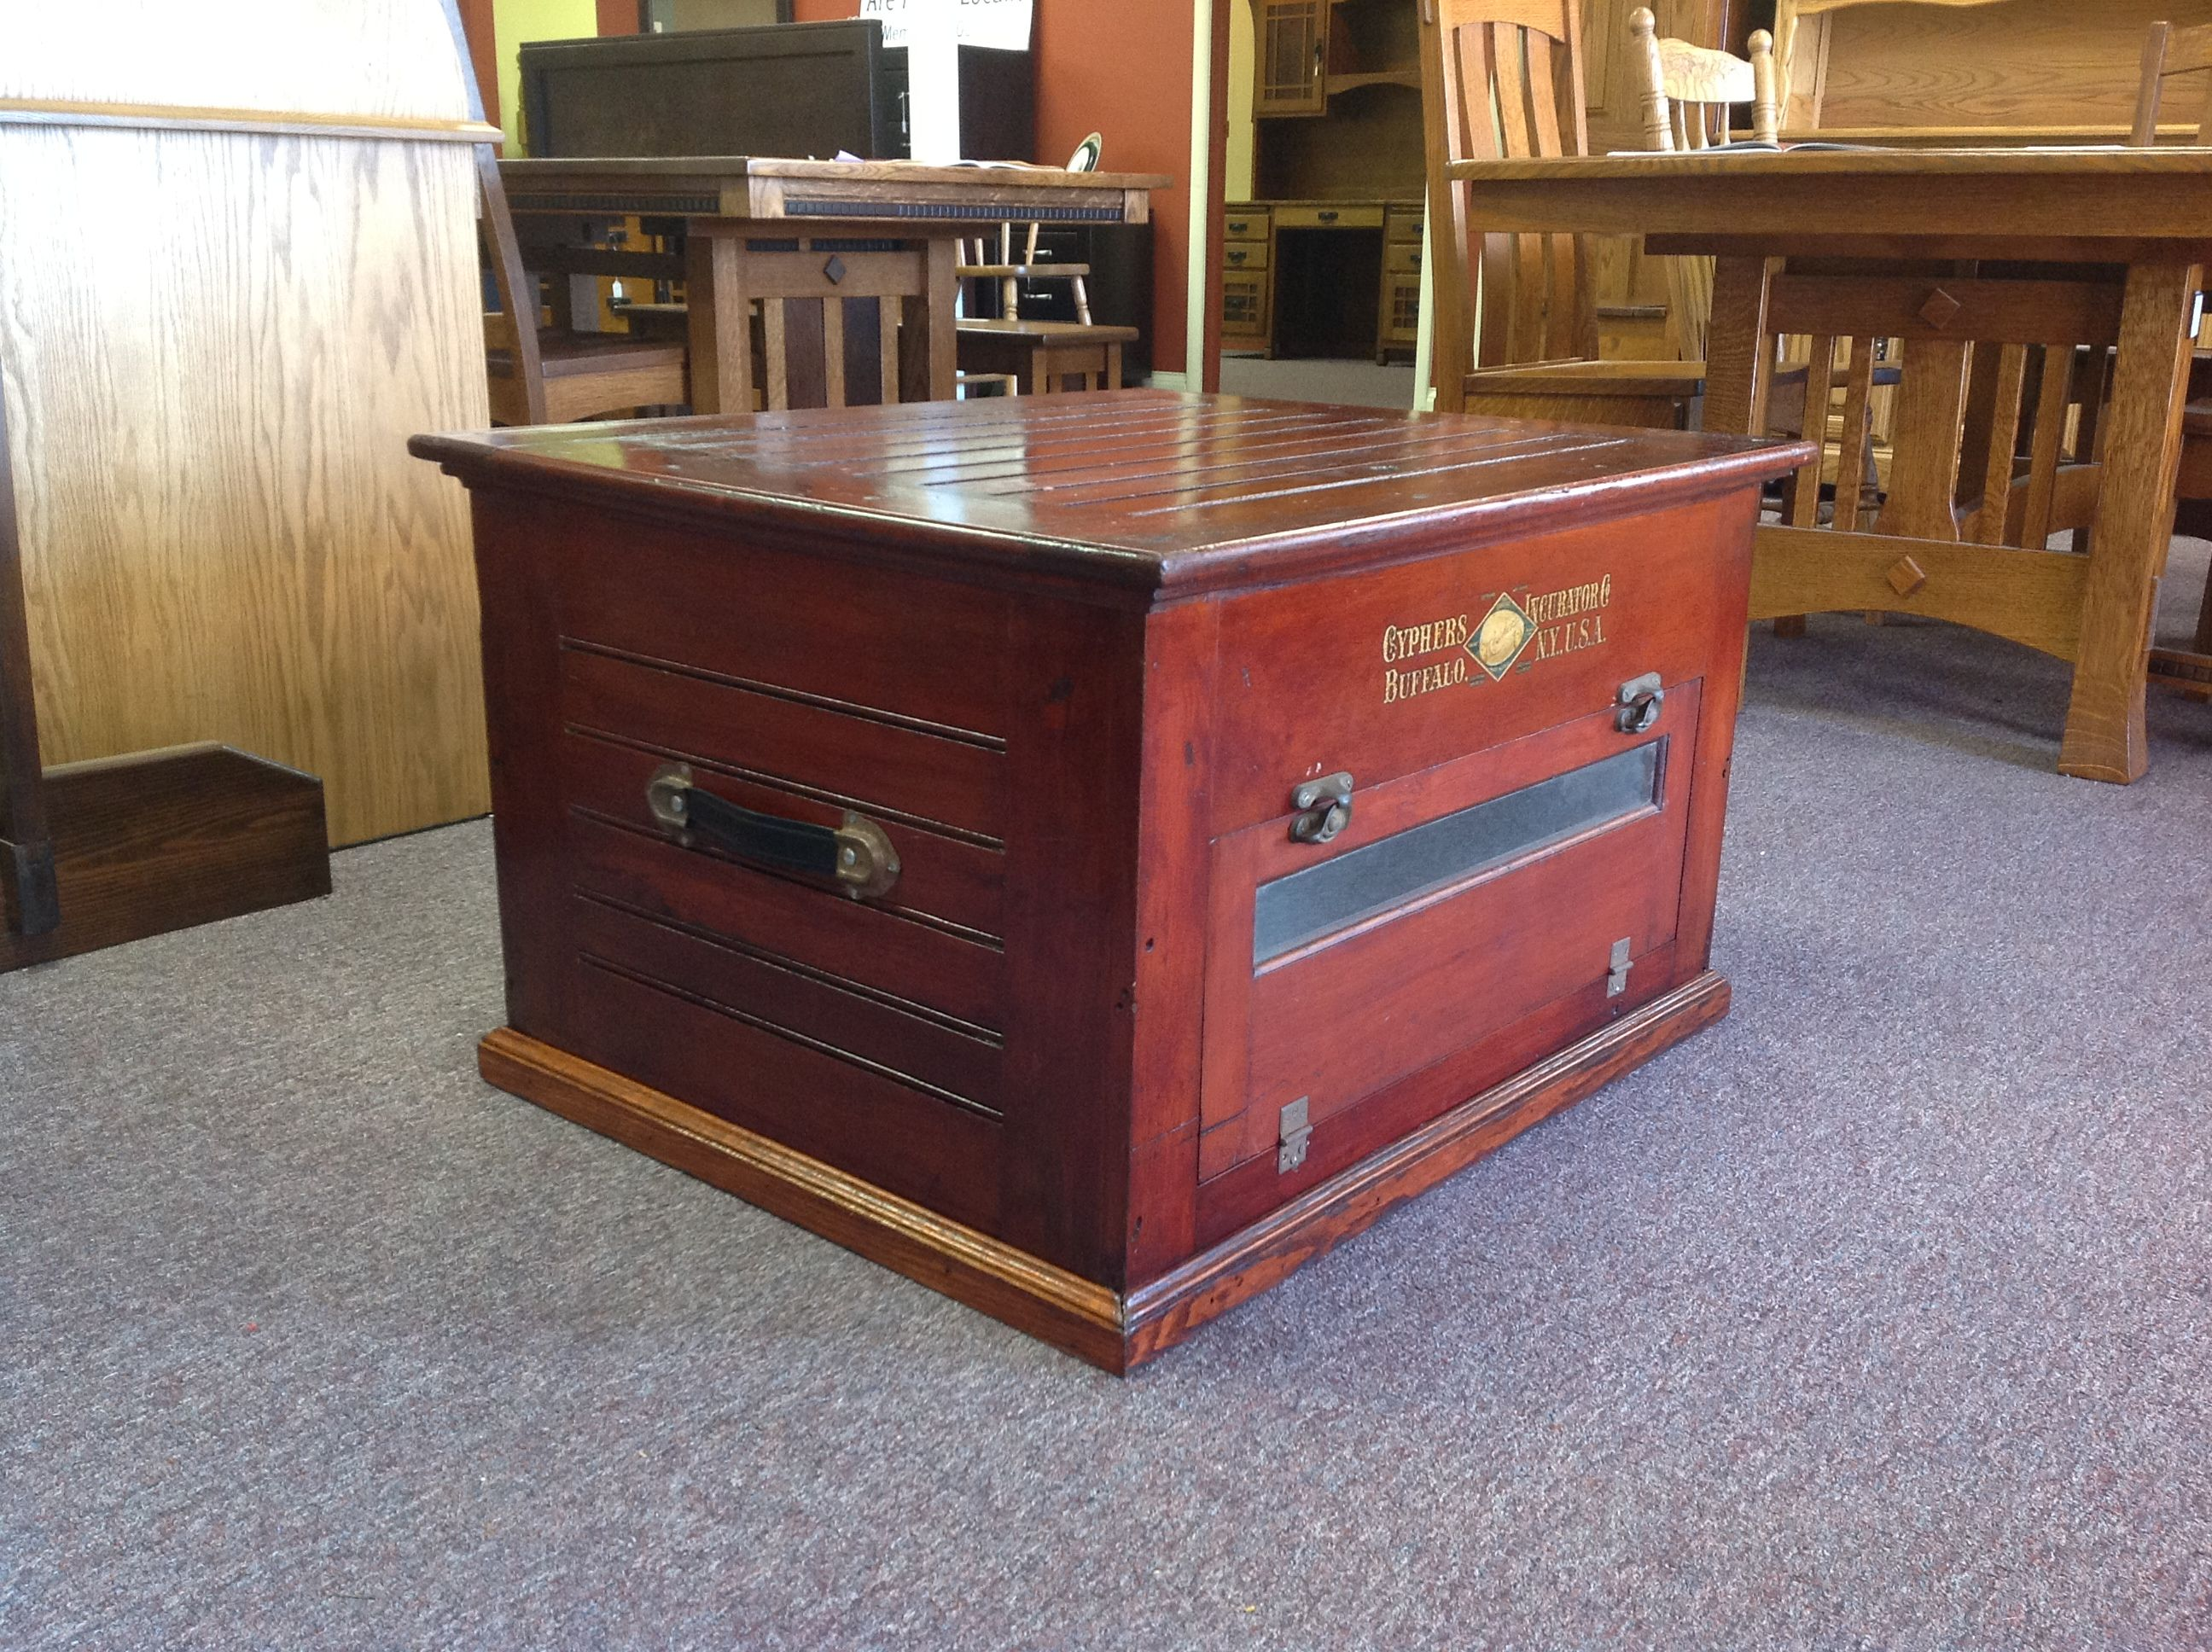 Chicken incubator converted to a coffee table Wisconsin Incubator